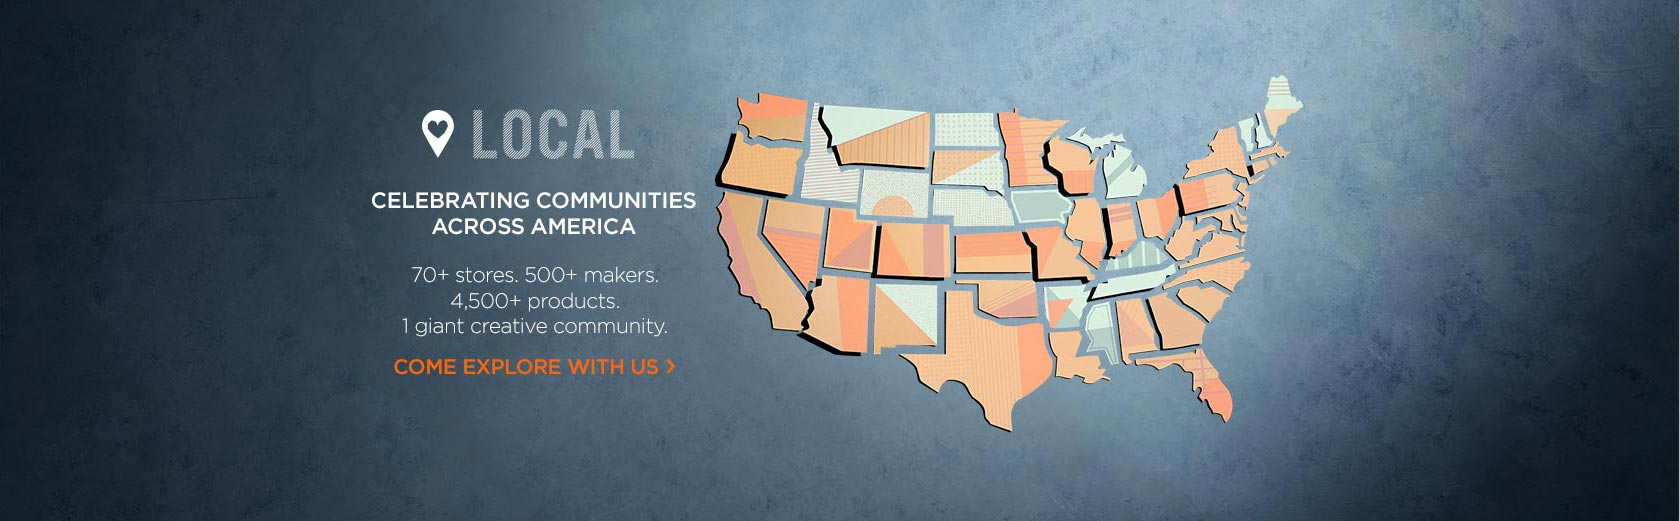 Local - Celebrating Communities Across America